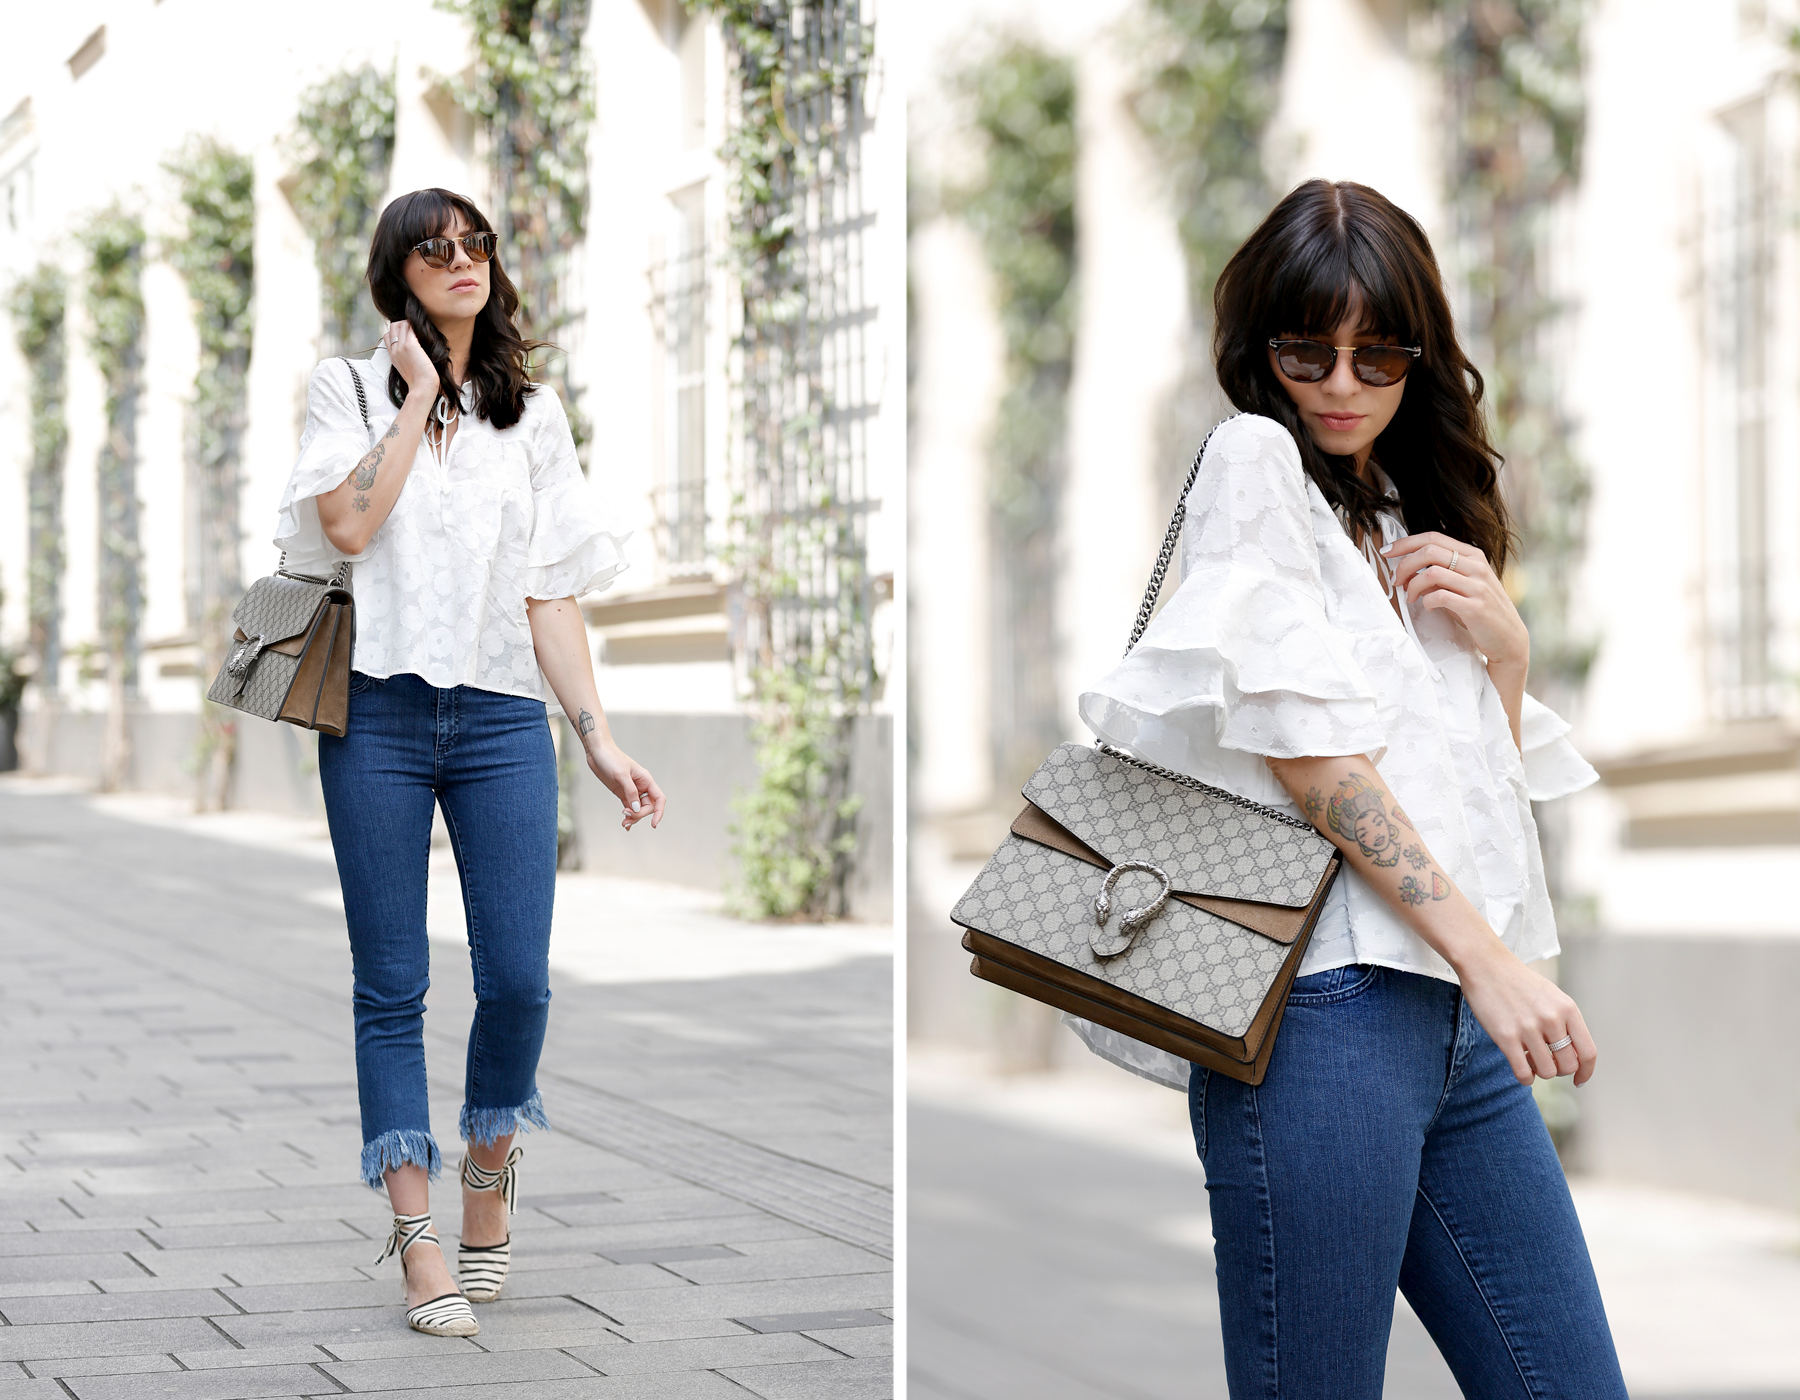 outfit spring summer minimal blue white clean bangs brunette girl cute french parisienne mango fringe jeans denim white blouse shopbop soludos espadrilles gucci dionysus bag luxury fashion modeblog germany ricarda schernus fashionblogger 7